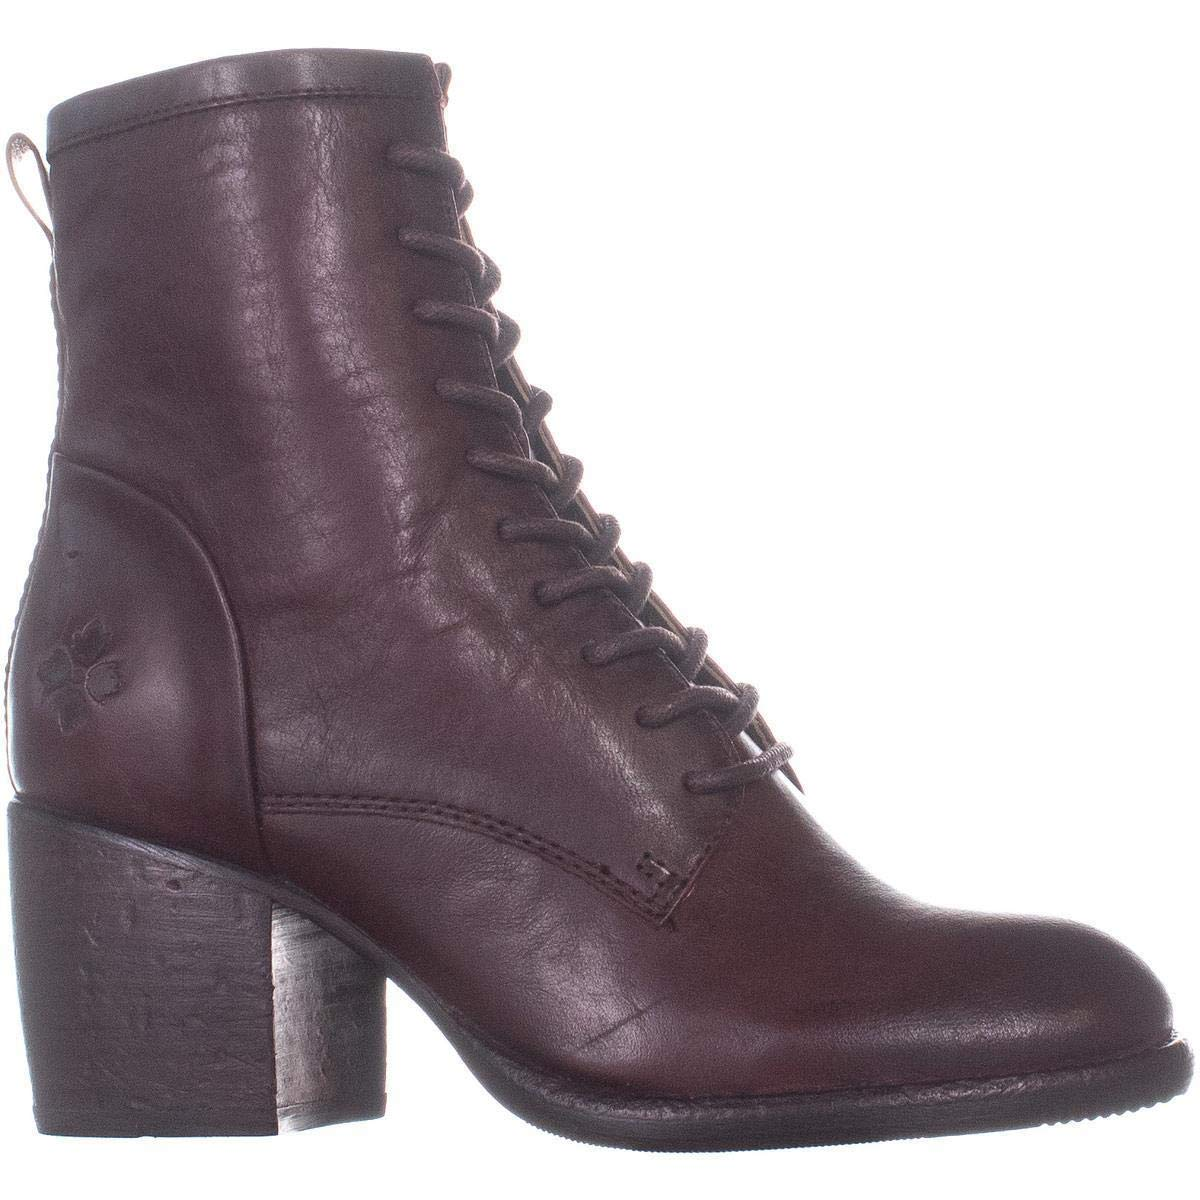 thumbnail 12 - Patricia-Nash-Womens-Sicily-Leather-Closed-Toe-Ankle-Fashion-Boots